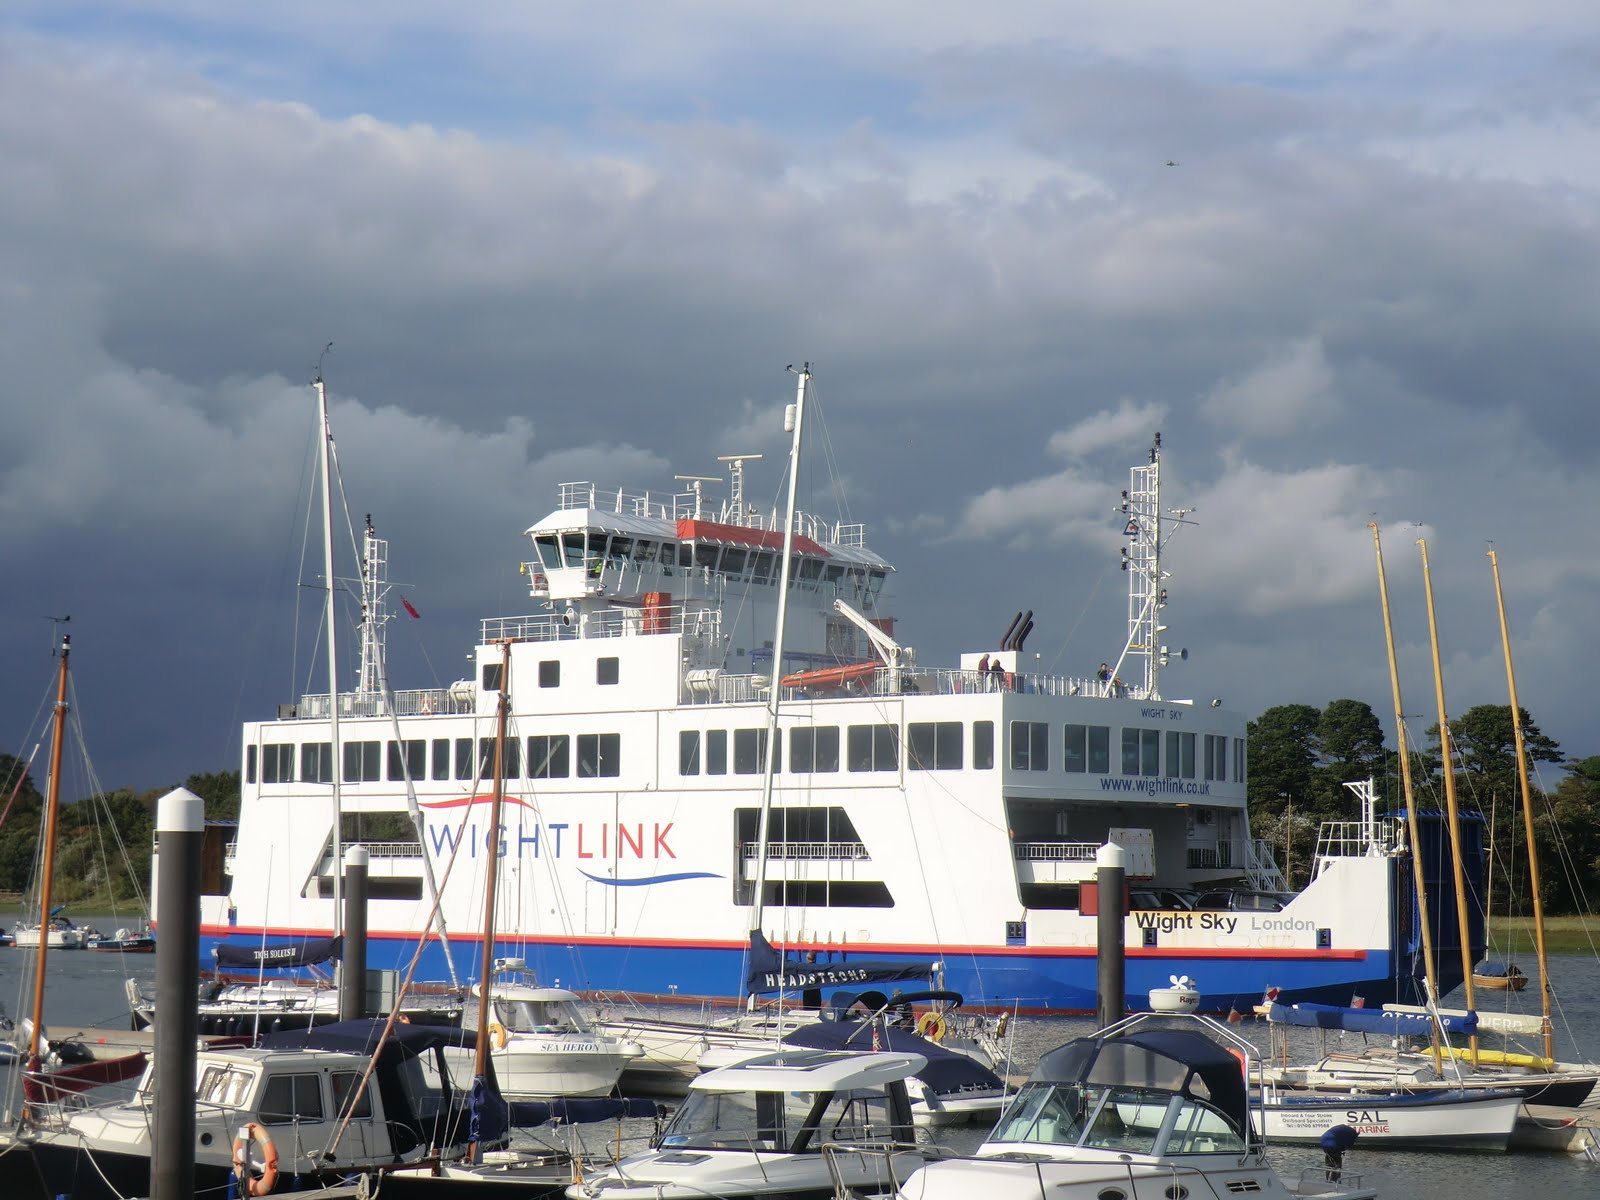 CIMG4509 A Wightlink ferry heading for Yarmouth (IoW)